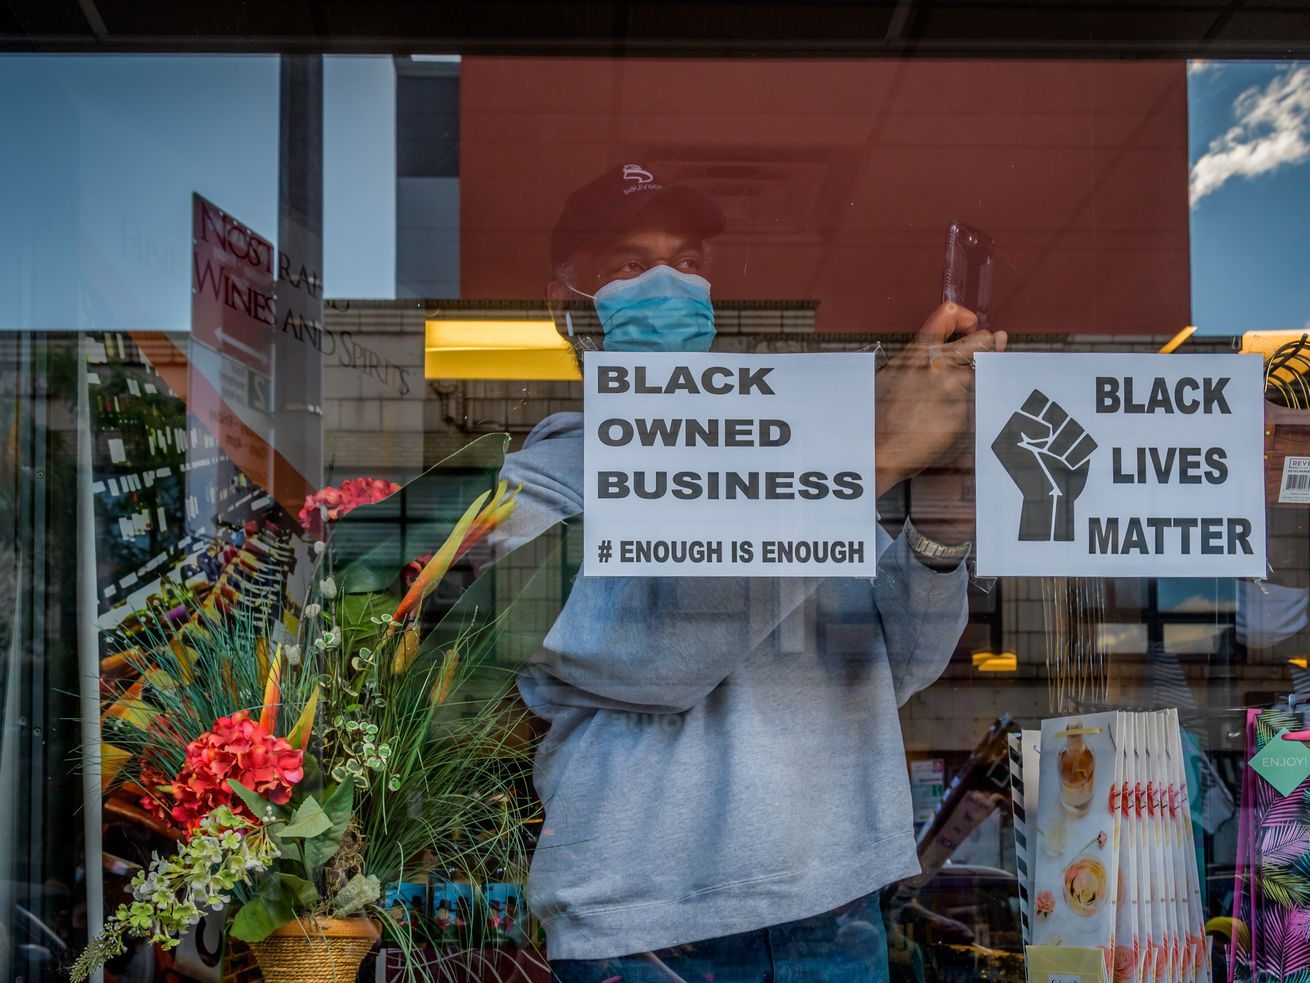 Aman wearing acap andmaskstands insideof ablack owned businessin Crown Heights Brooklyn .